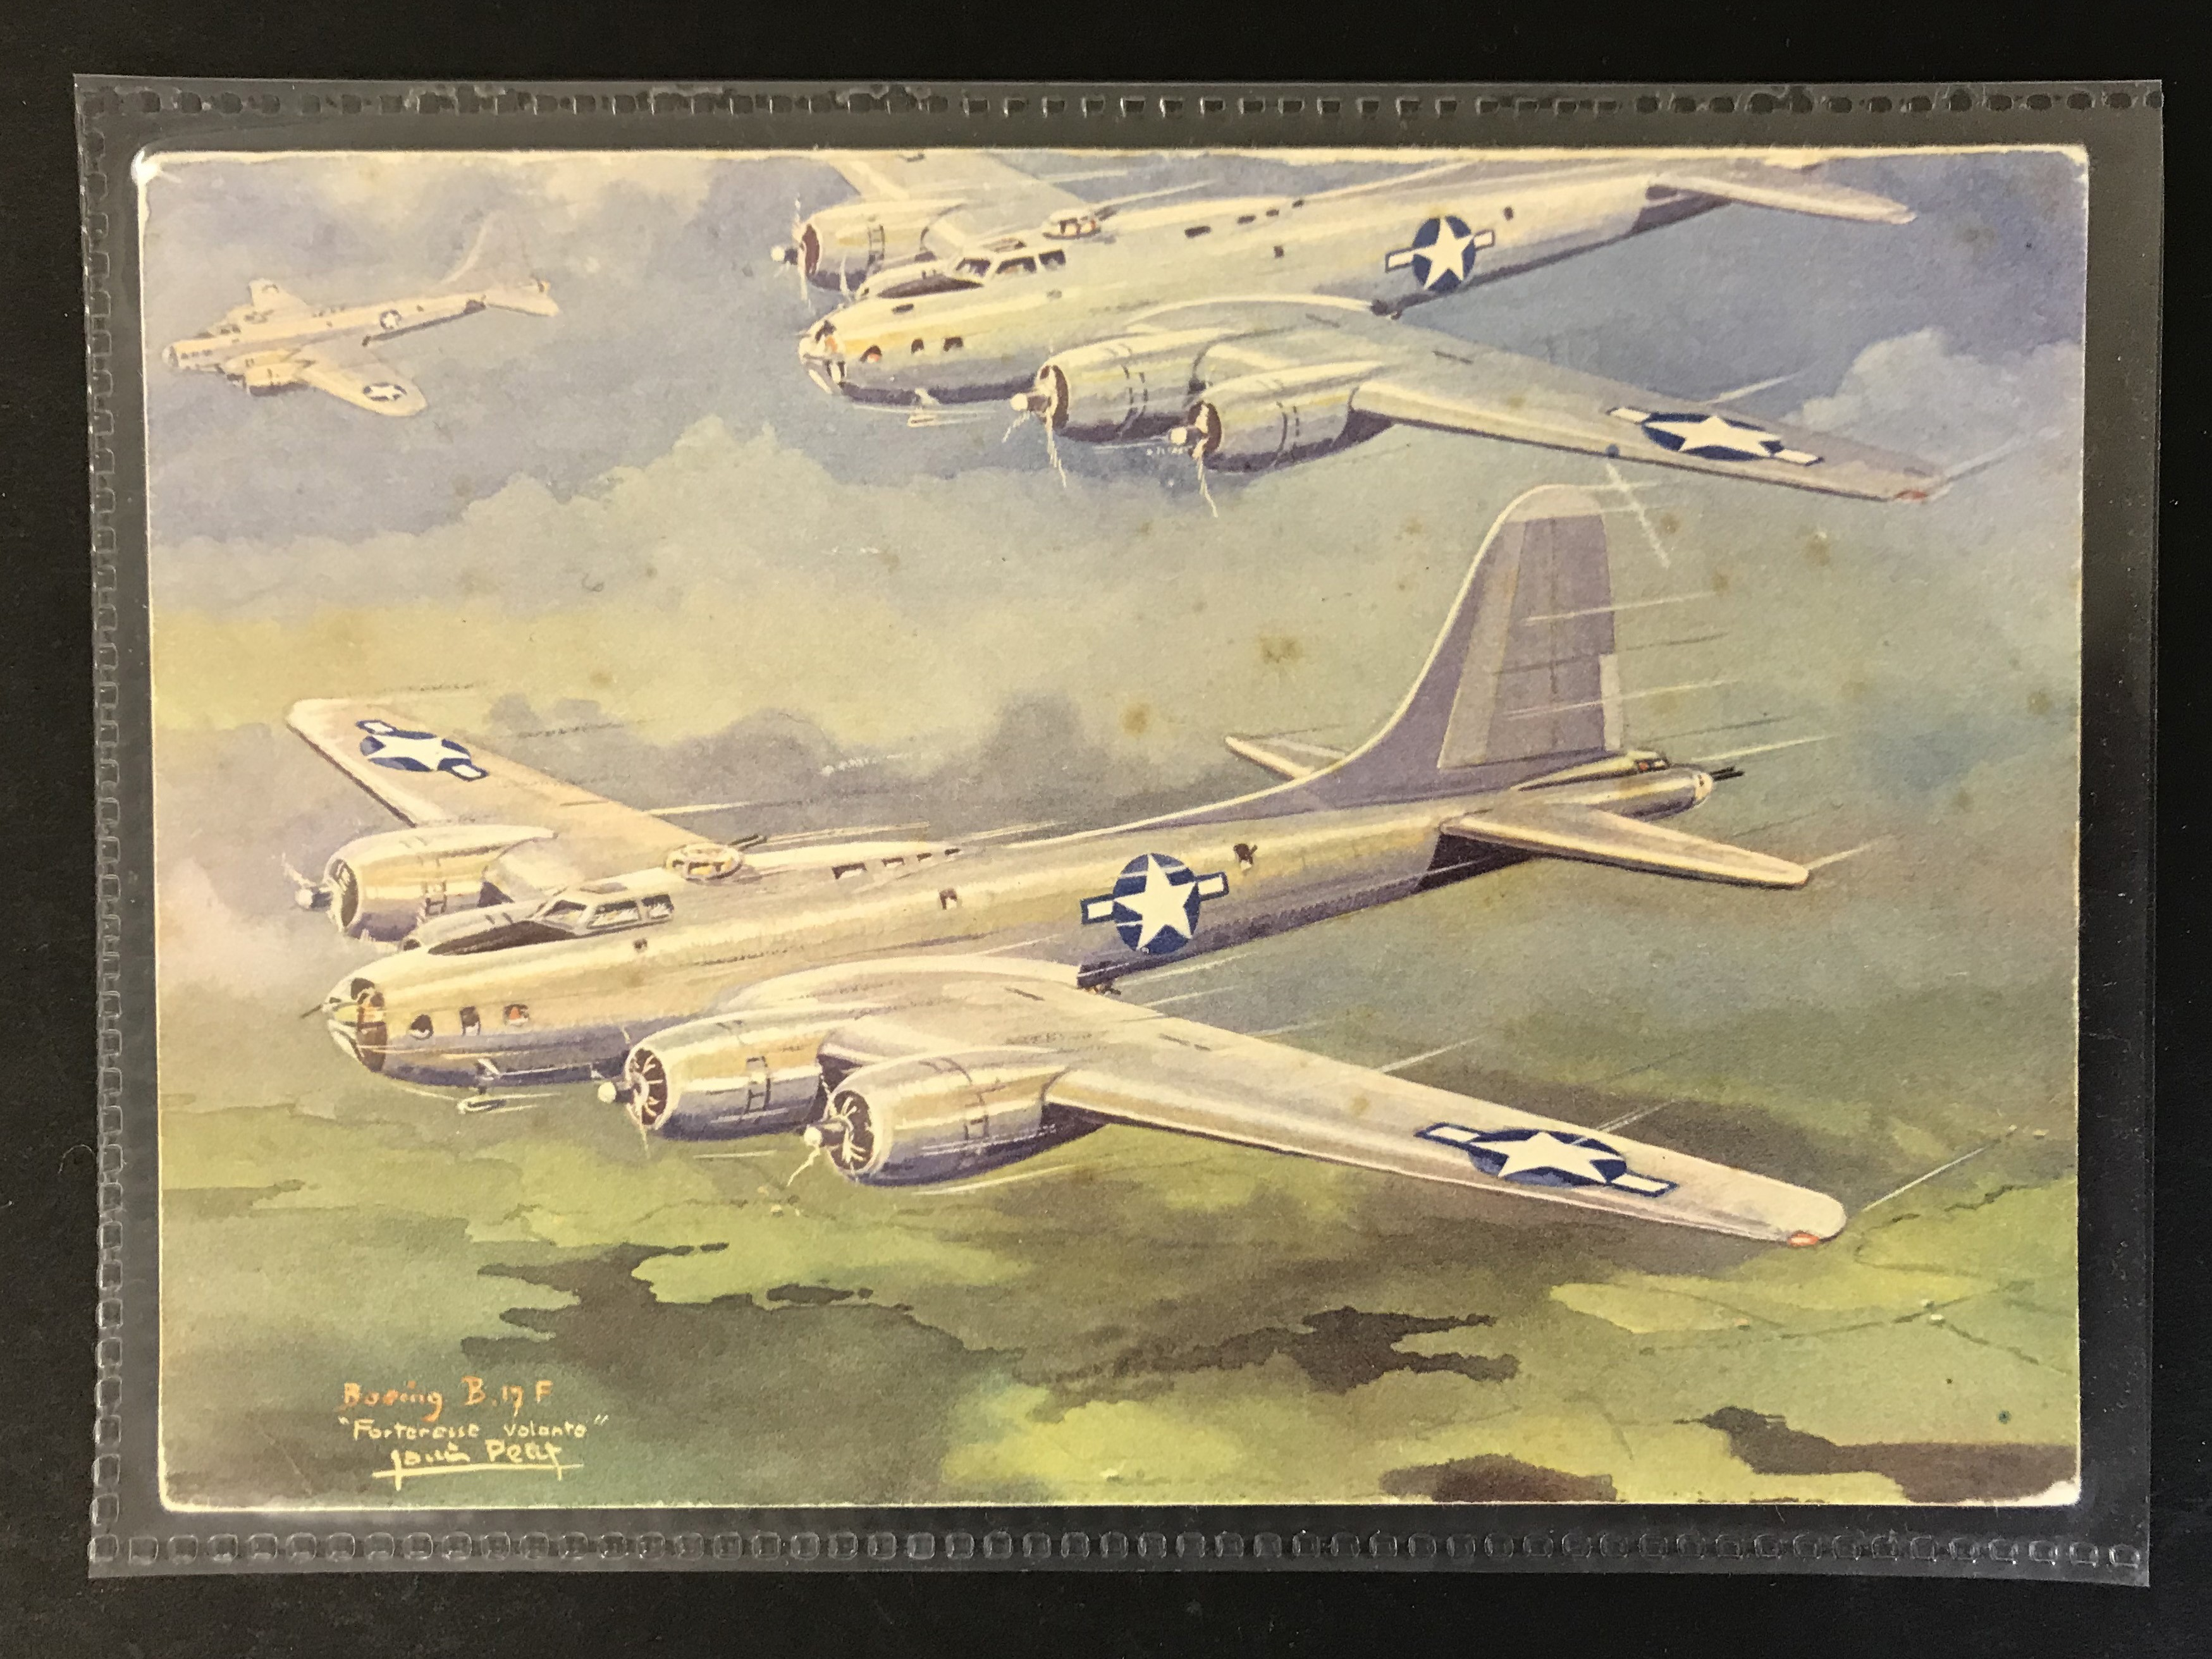 GROUP OF TWELVE FRENCH PLANES RELATED POSTCARDS - VARIOUS SERIES - Image 3 of 14